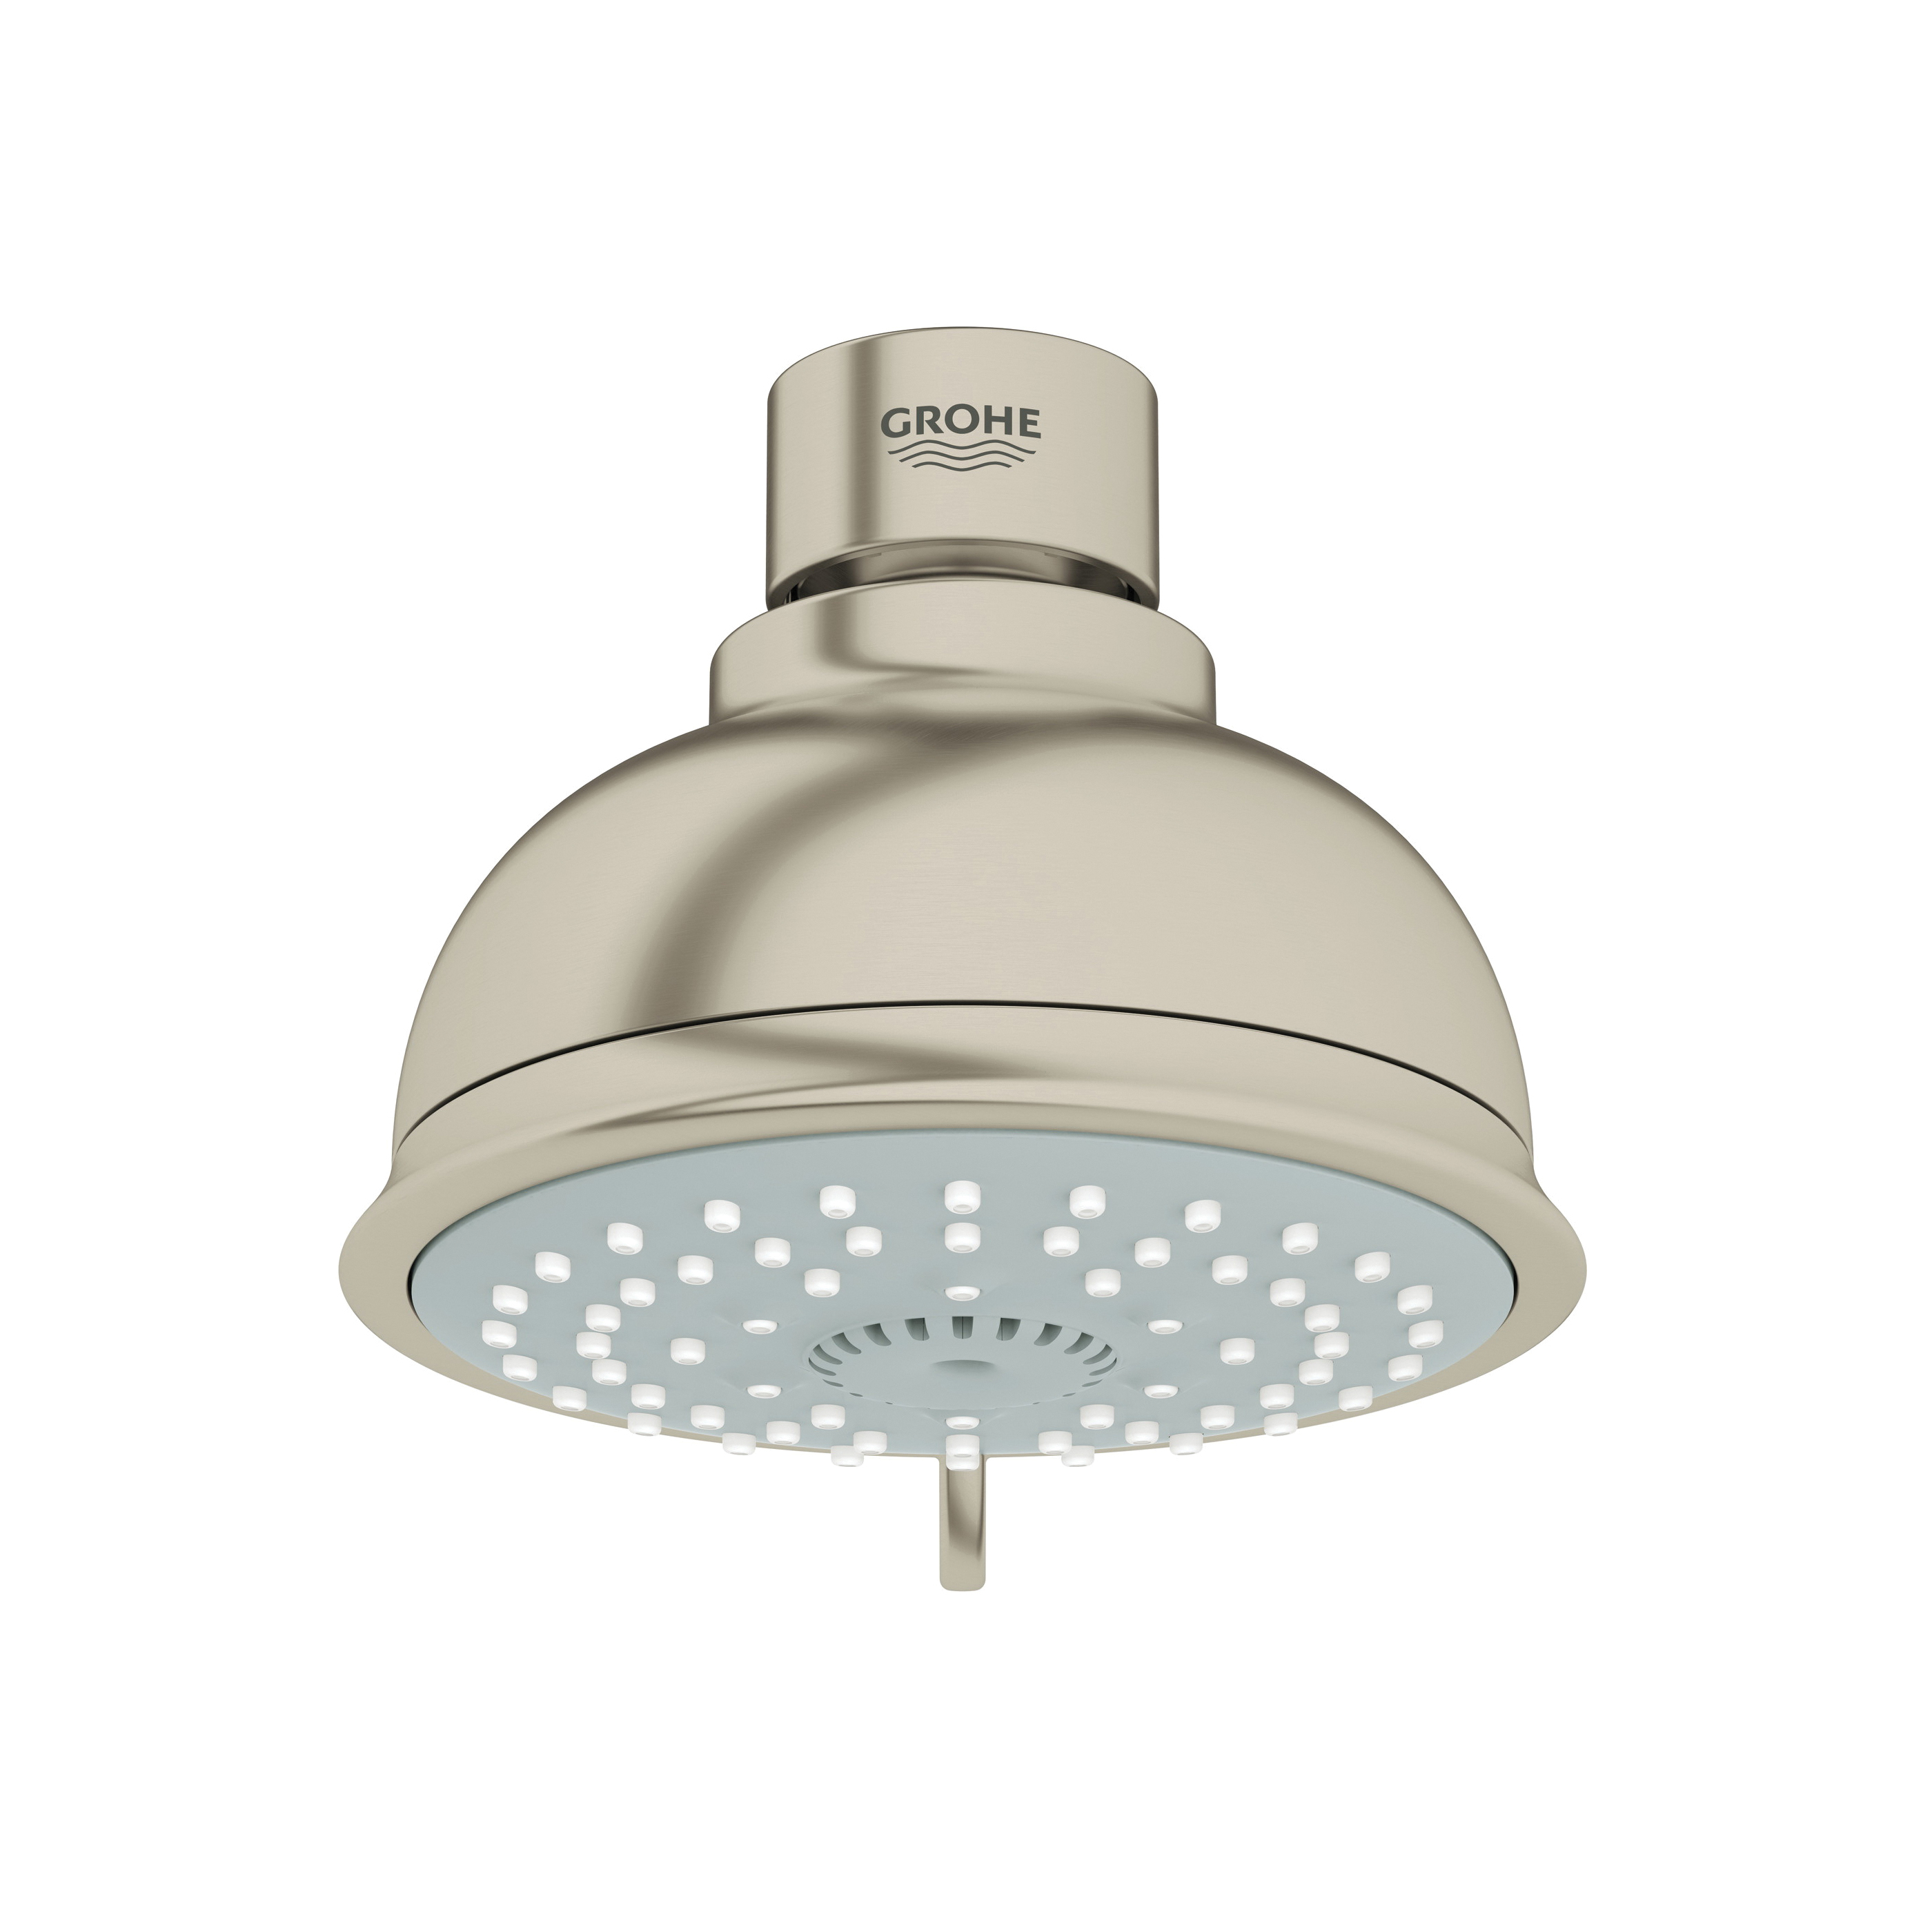 GROHE 27610EN0 New Tempesta® Rustic 100 Shower Head, 2.5 gpm, 4 Sprays, Wall Mount, 3-15/16 in Dia Head, Import